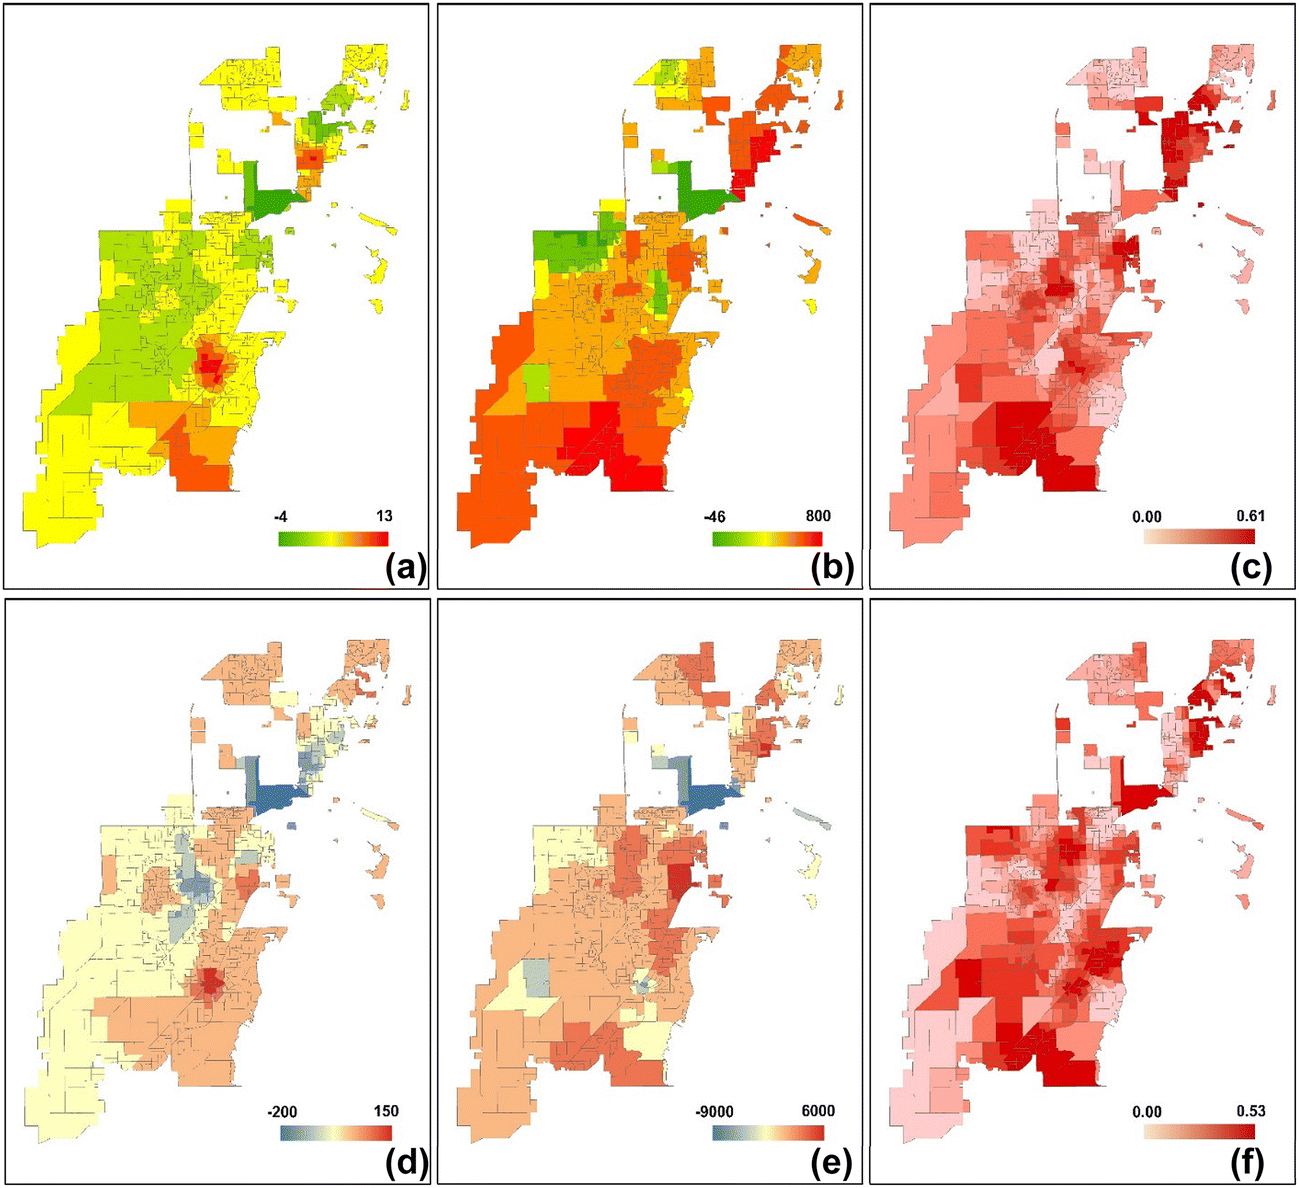 The role of land use and walkability in predicting crime